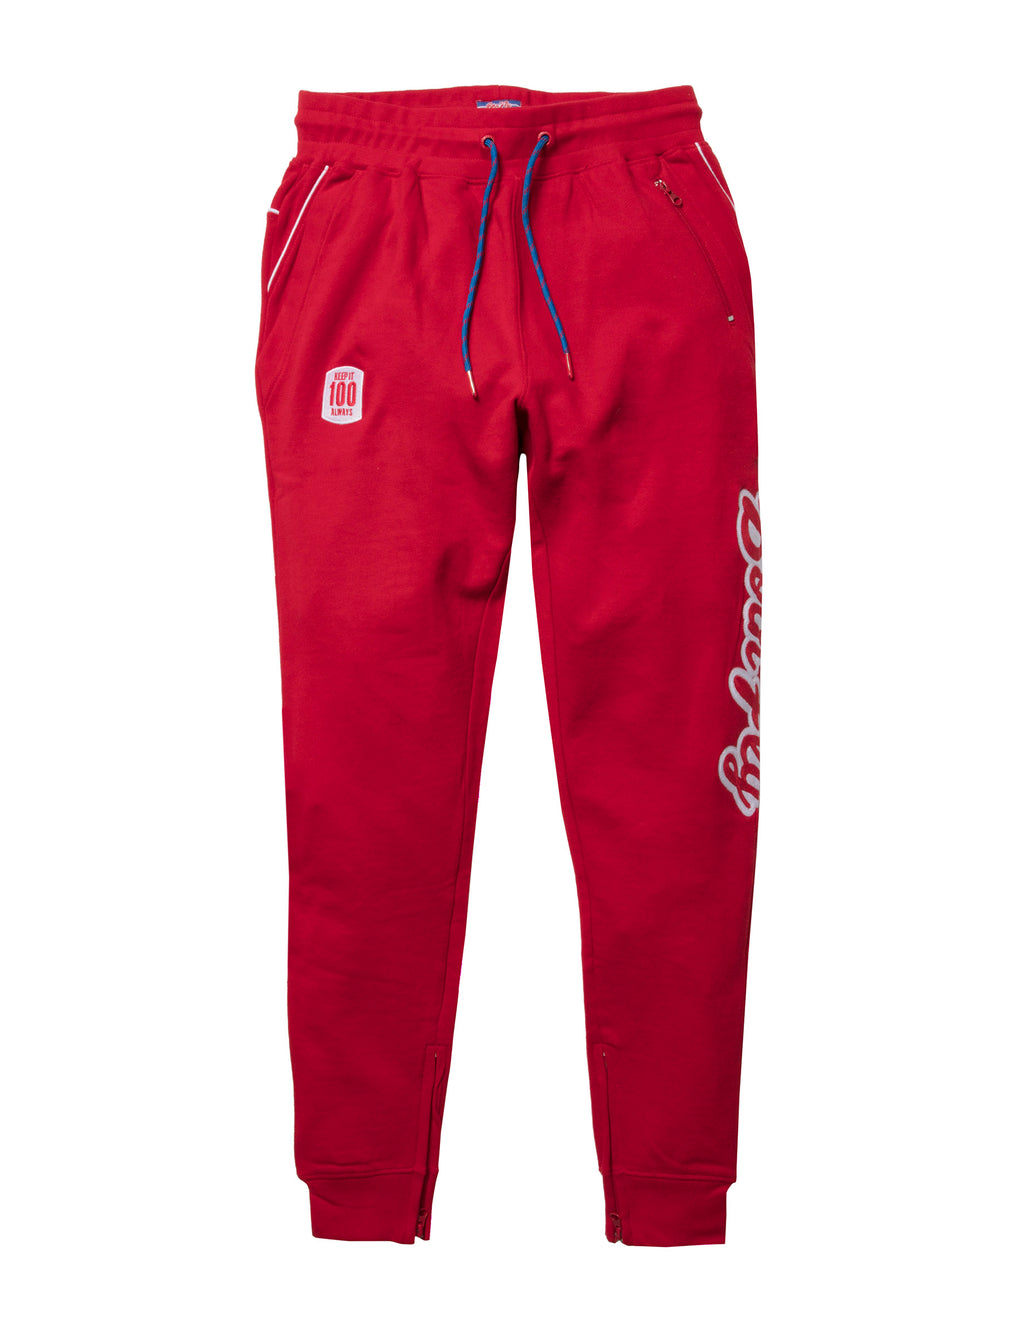 Crunch Fleece Jogger